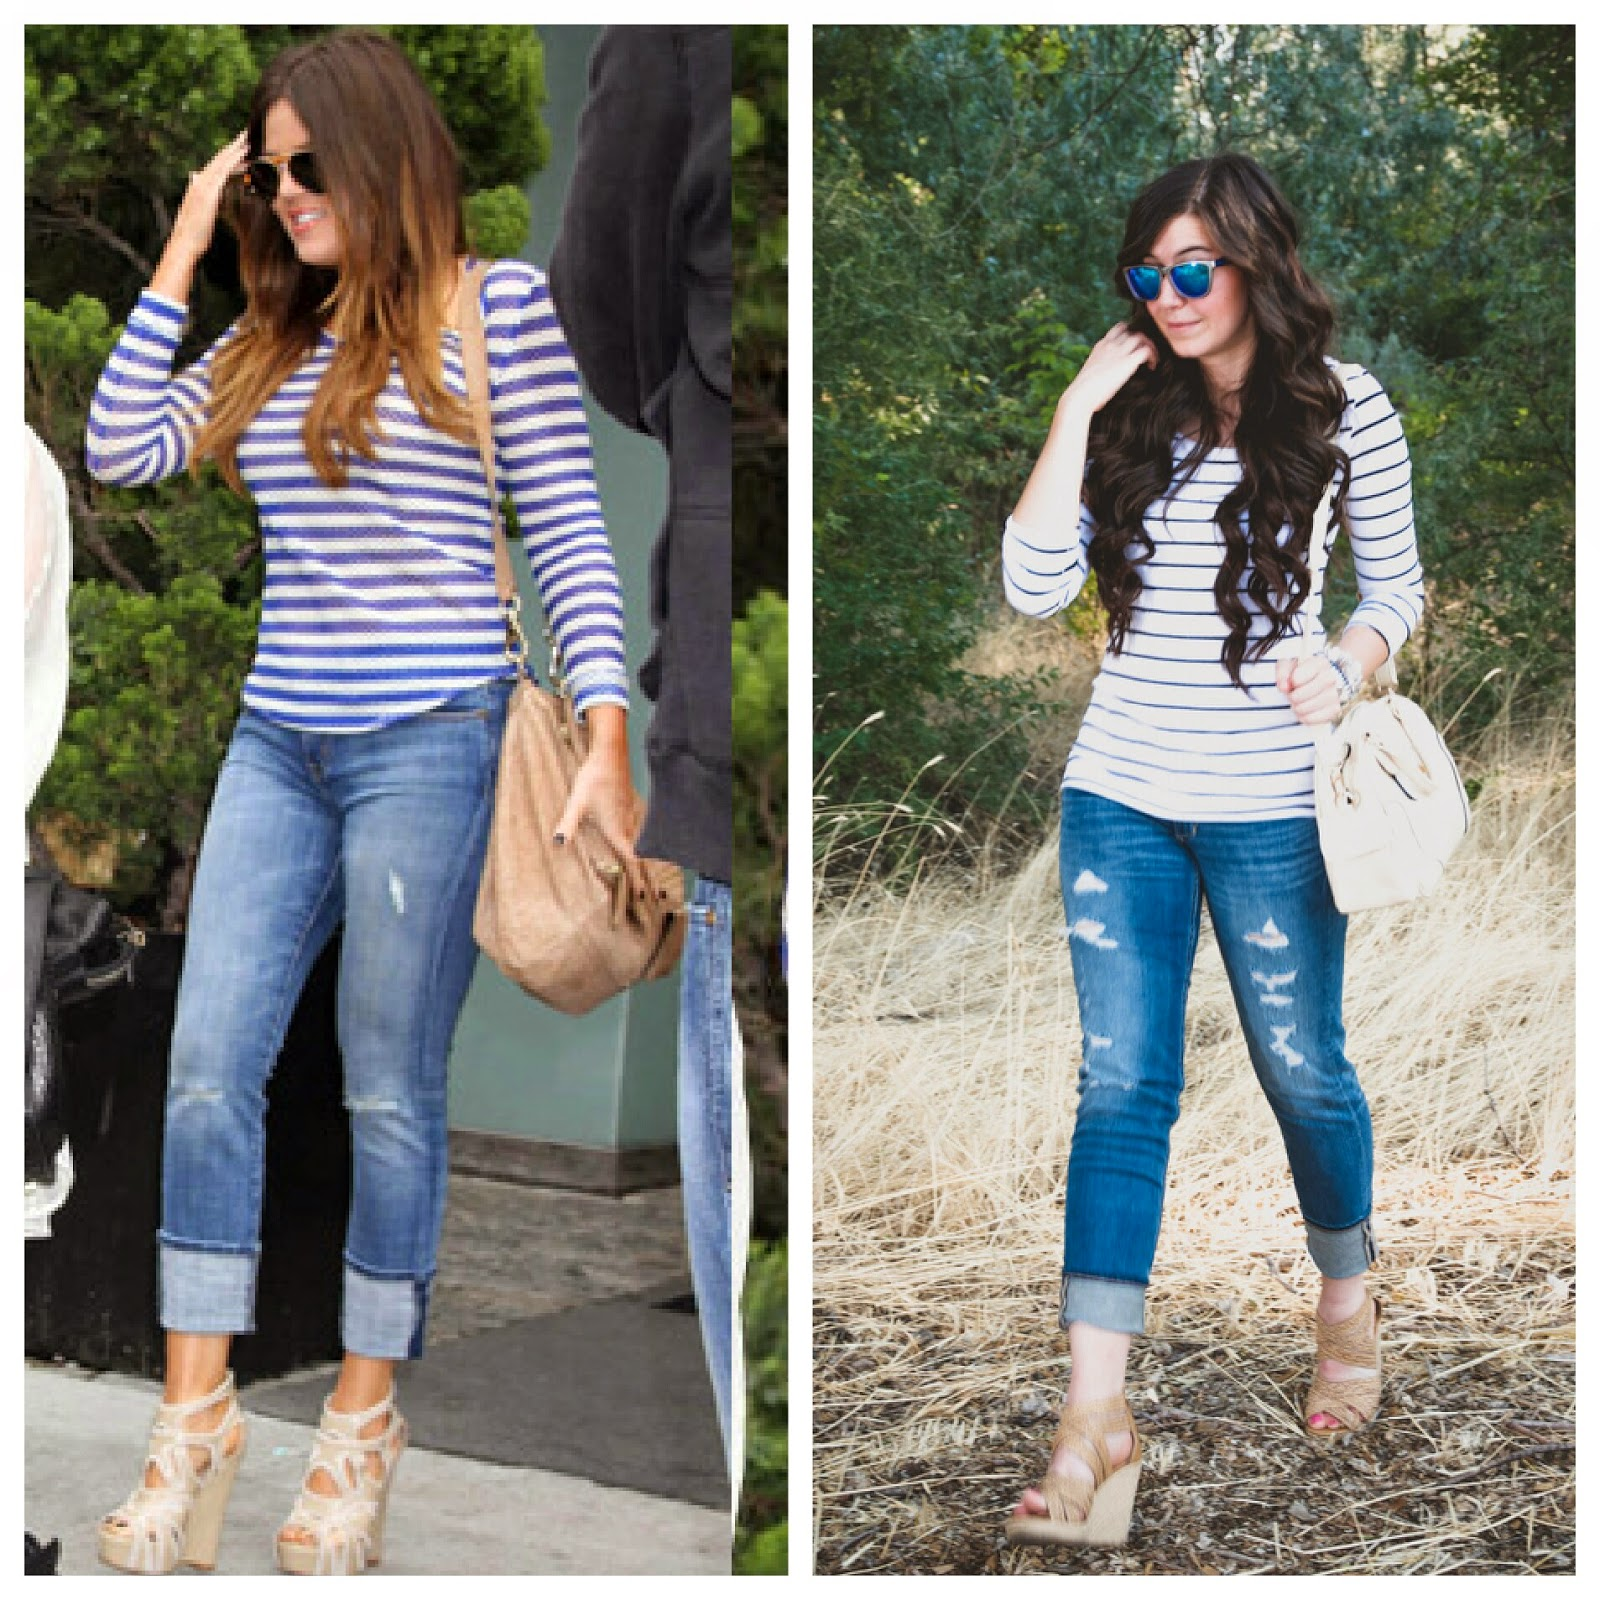 khloe kardashian, celebrity look, celebrity look for less, destroyed jeans, destroyed denim, casual look, casual attire, casual outfit, stripes and jeans, bag, cute, shades, dolce vita, jcpenneys, jcpenney,